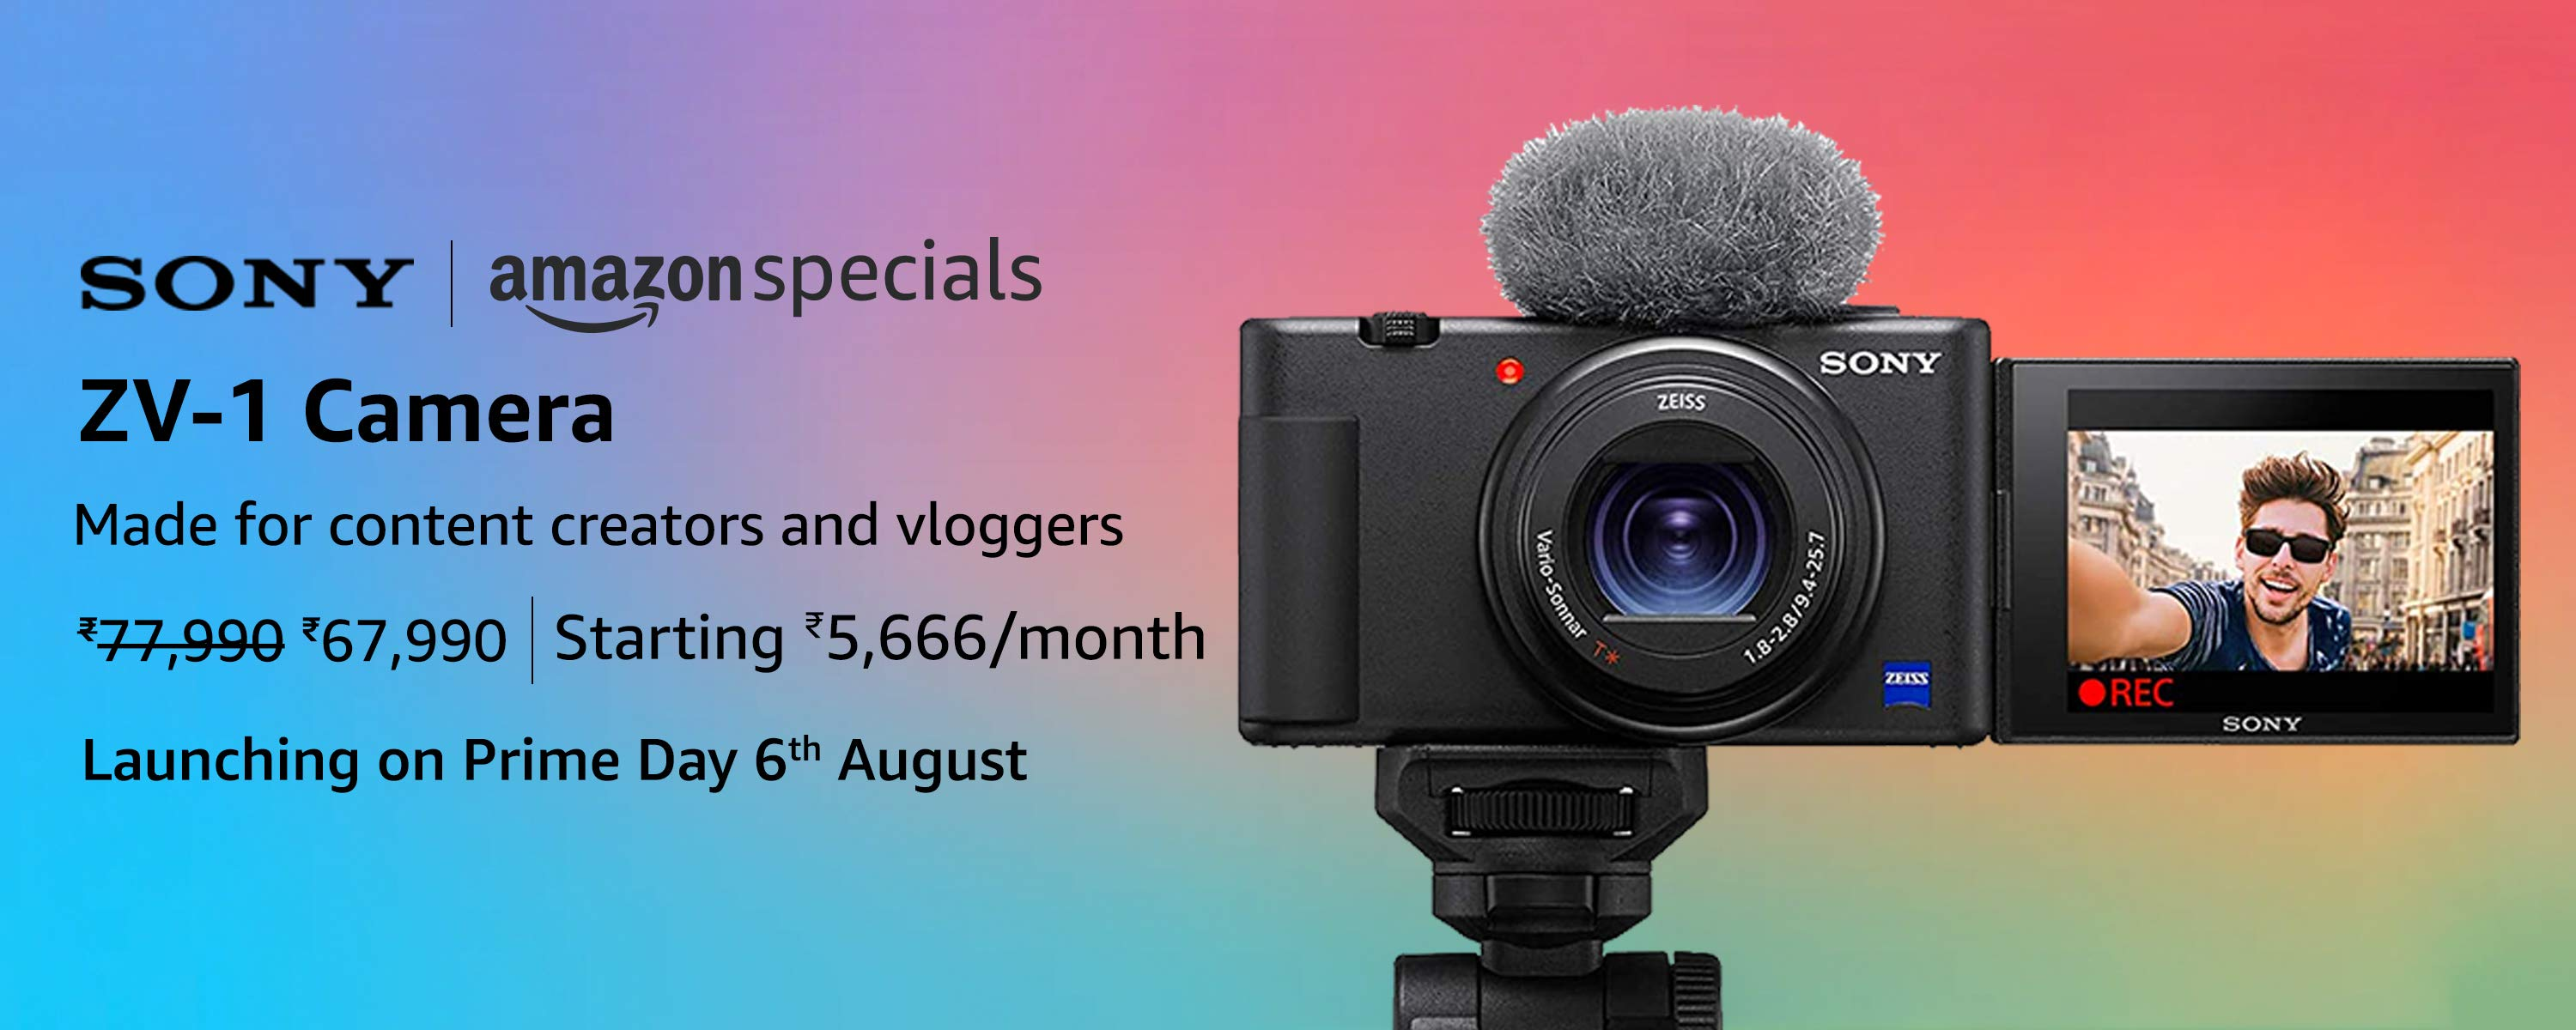 Sony ZV-1 Camera with heavy discount on Amazon Prime Day Sale 2020